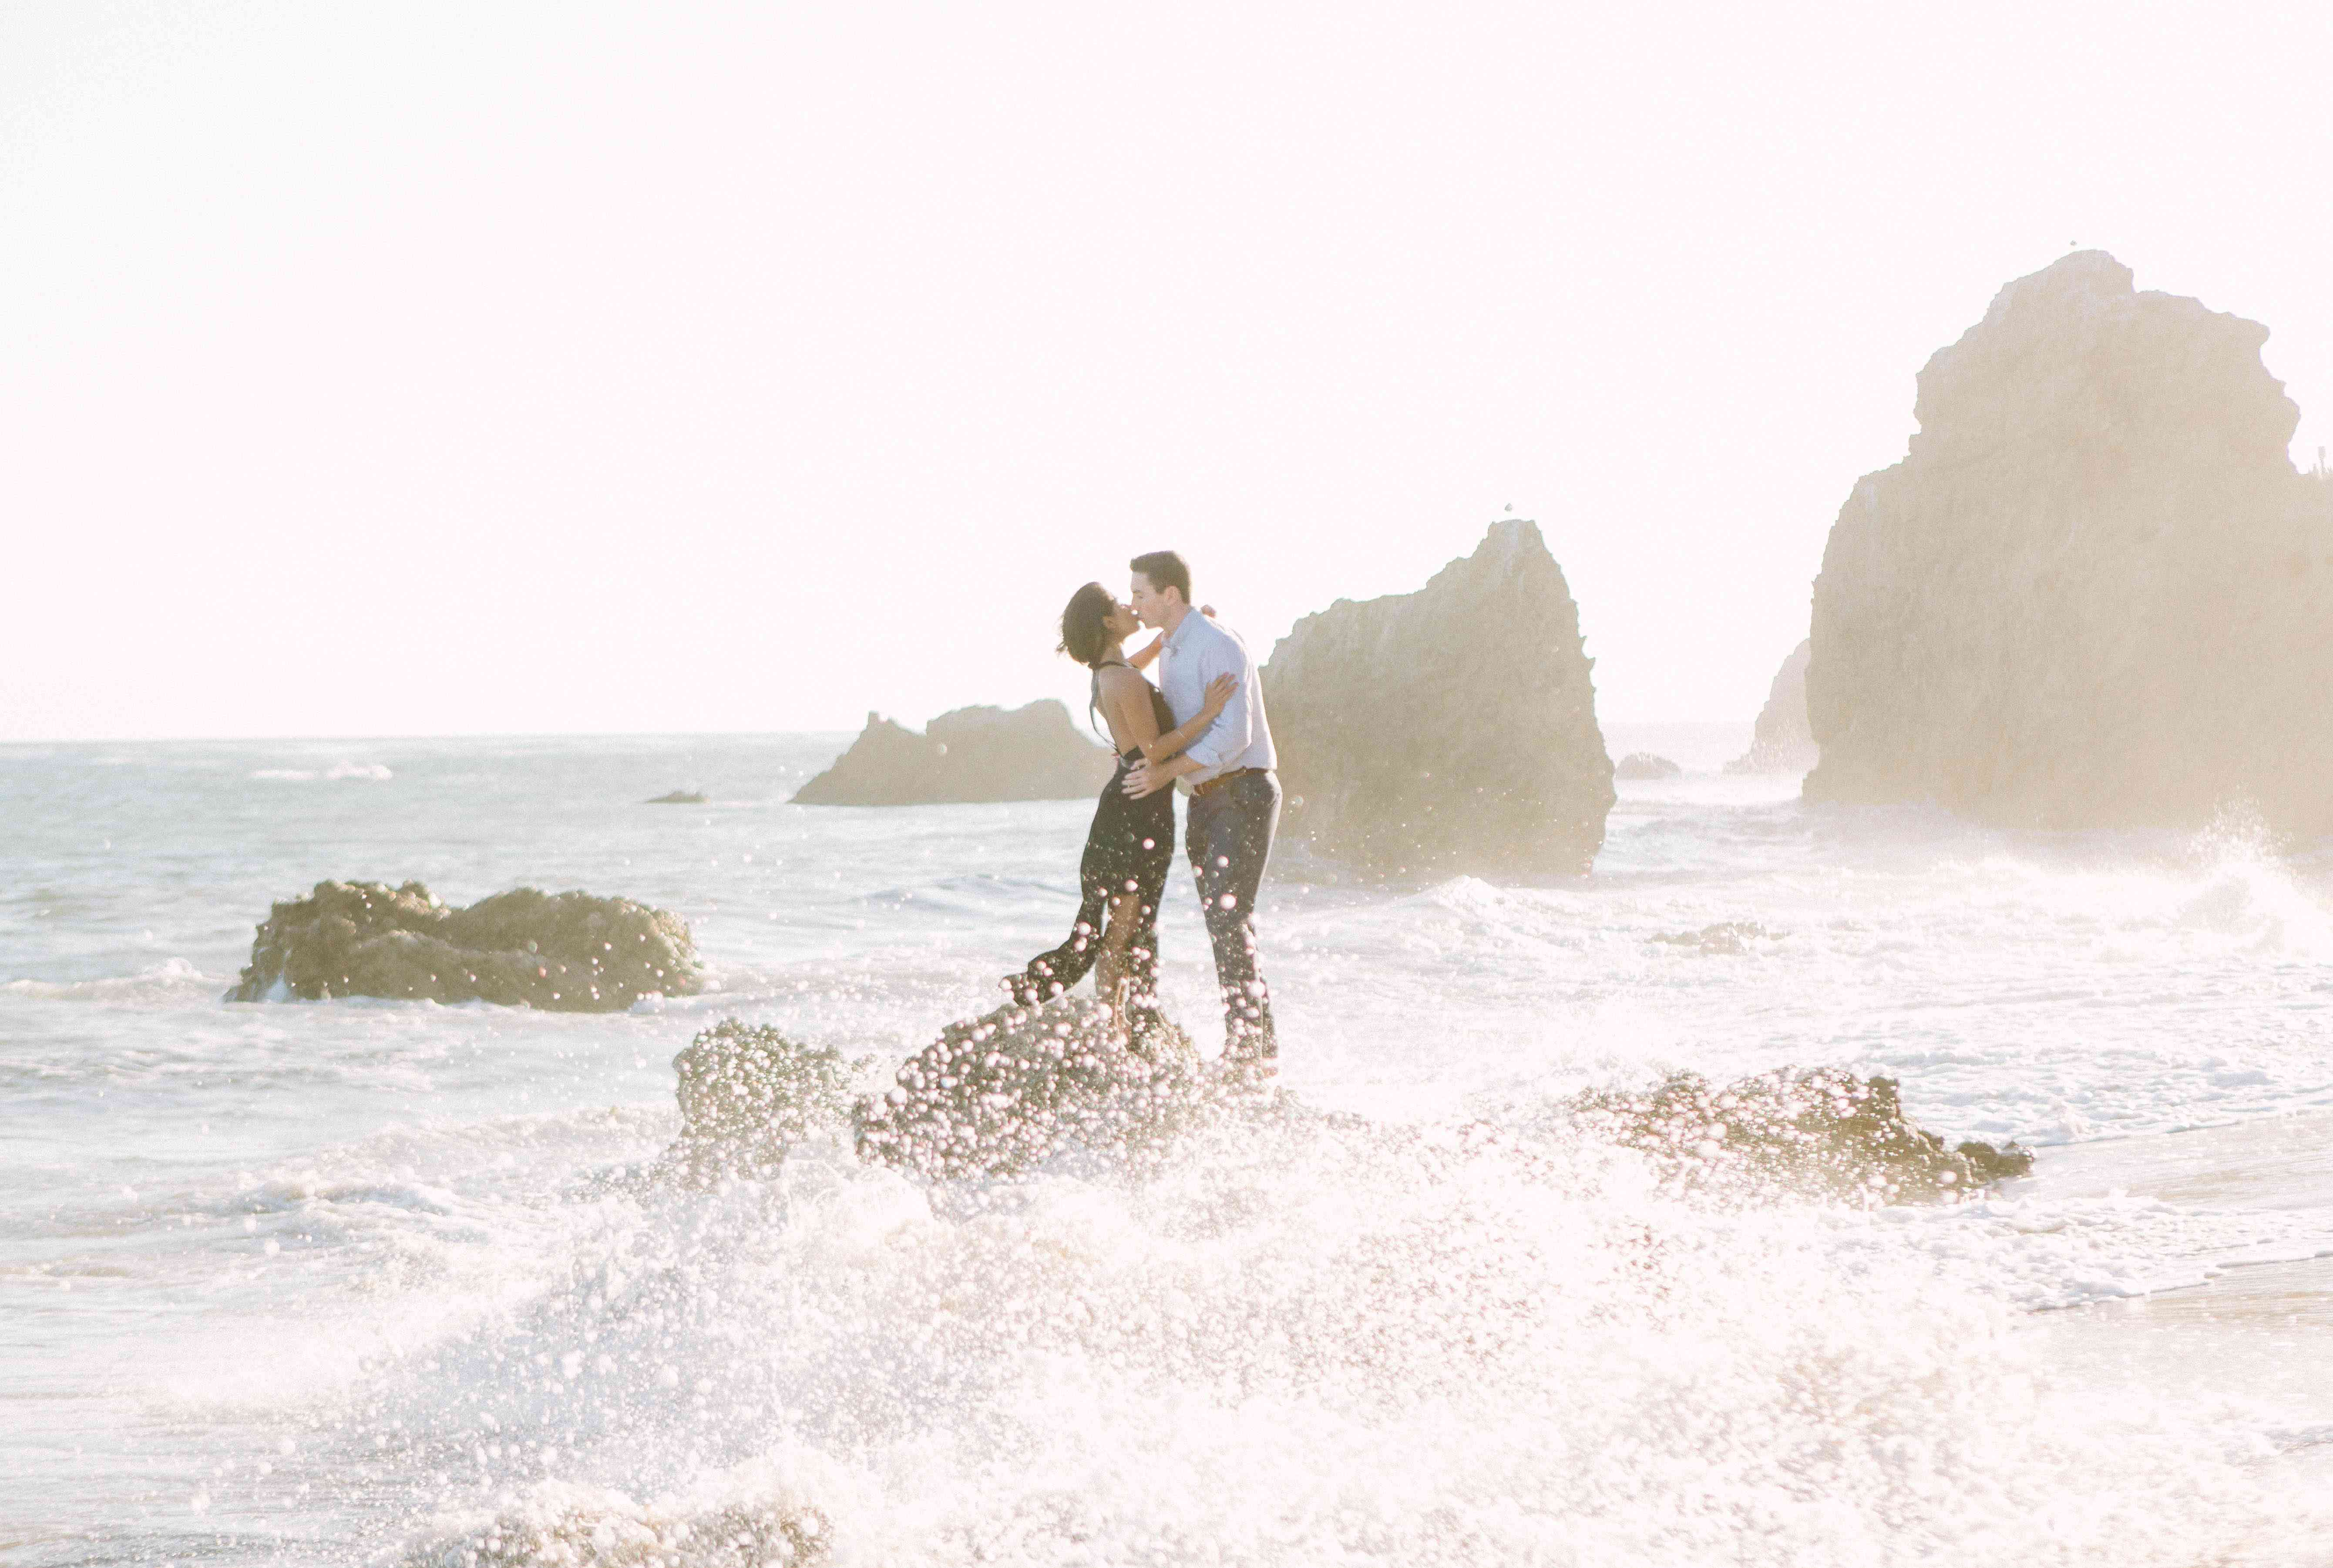 Couple at the ocean